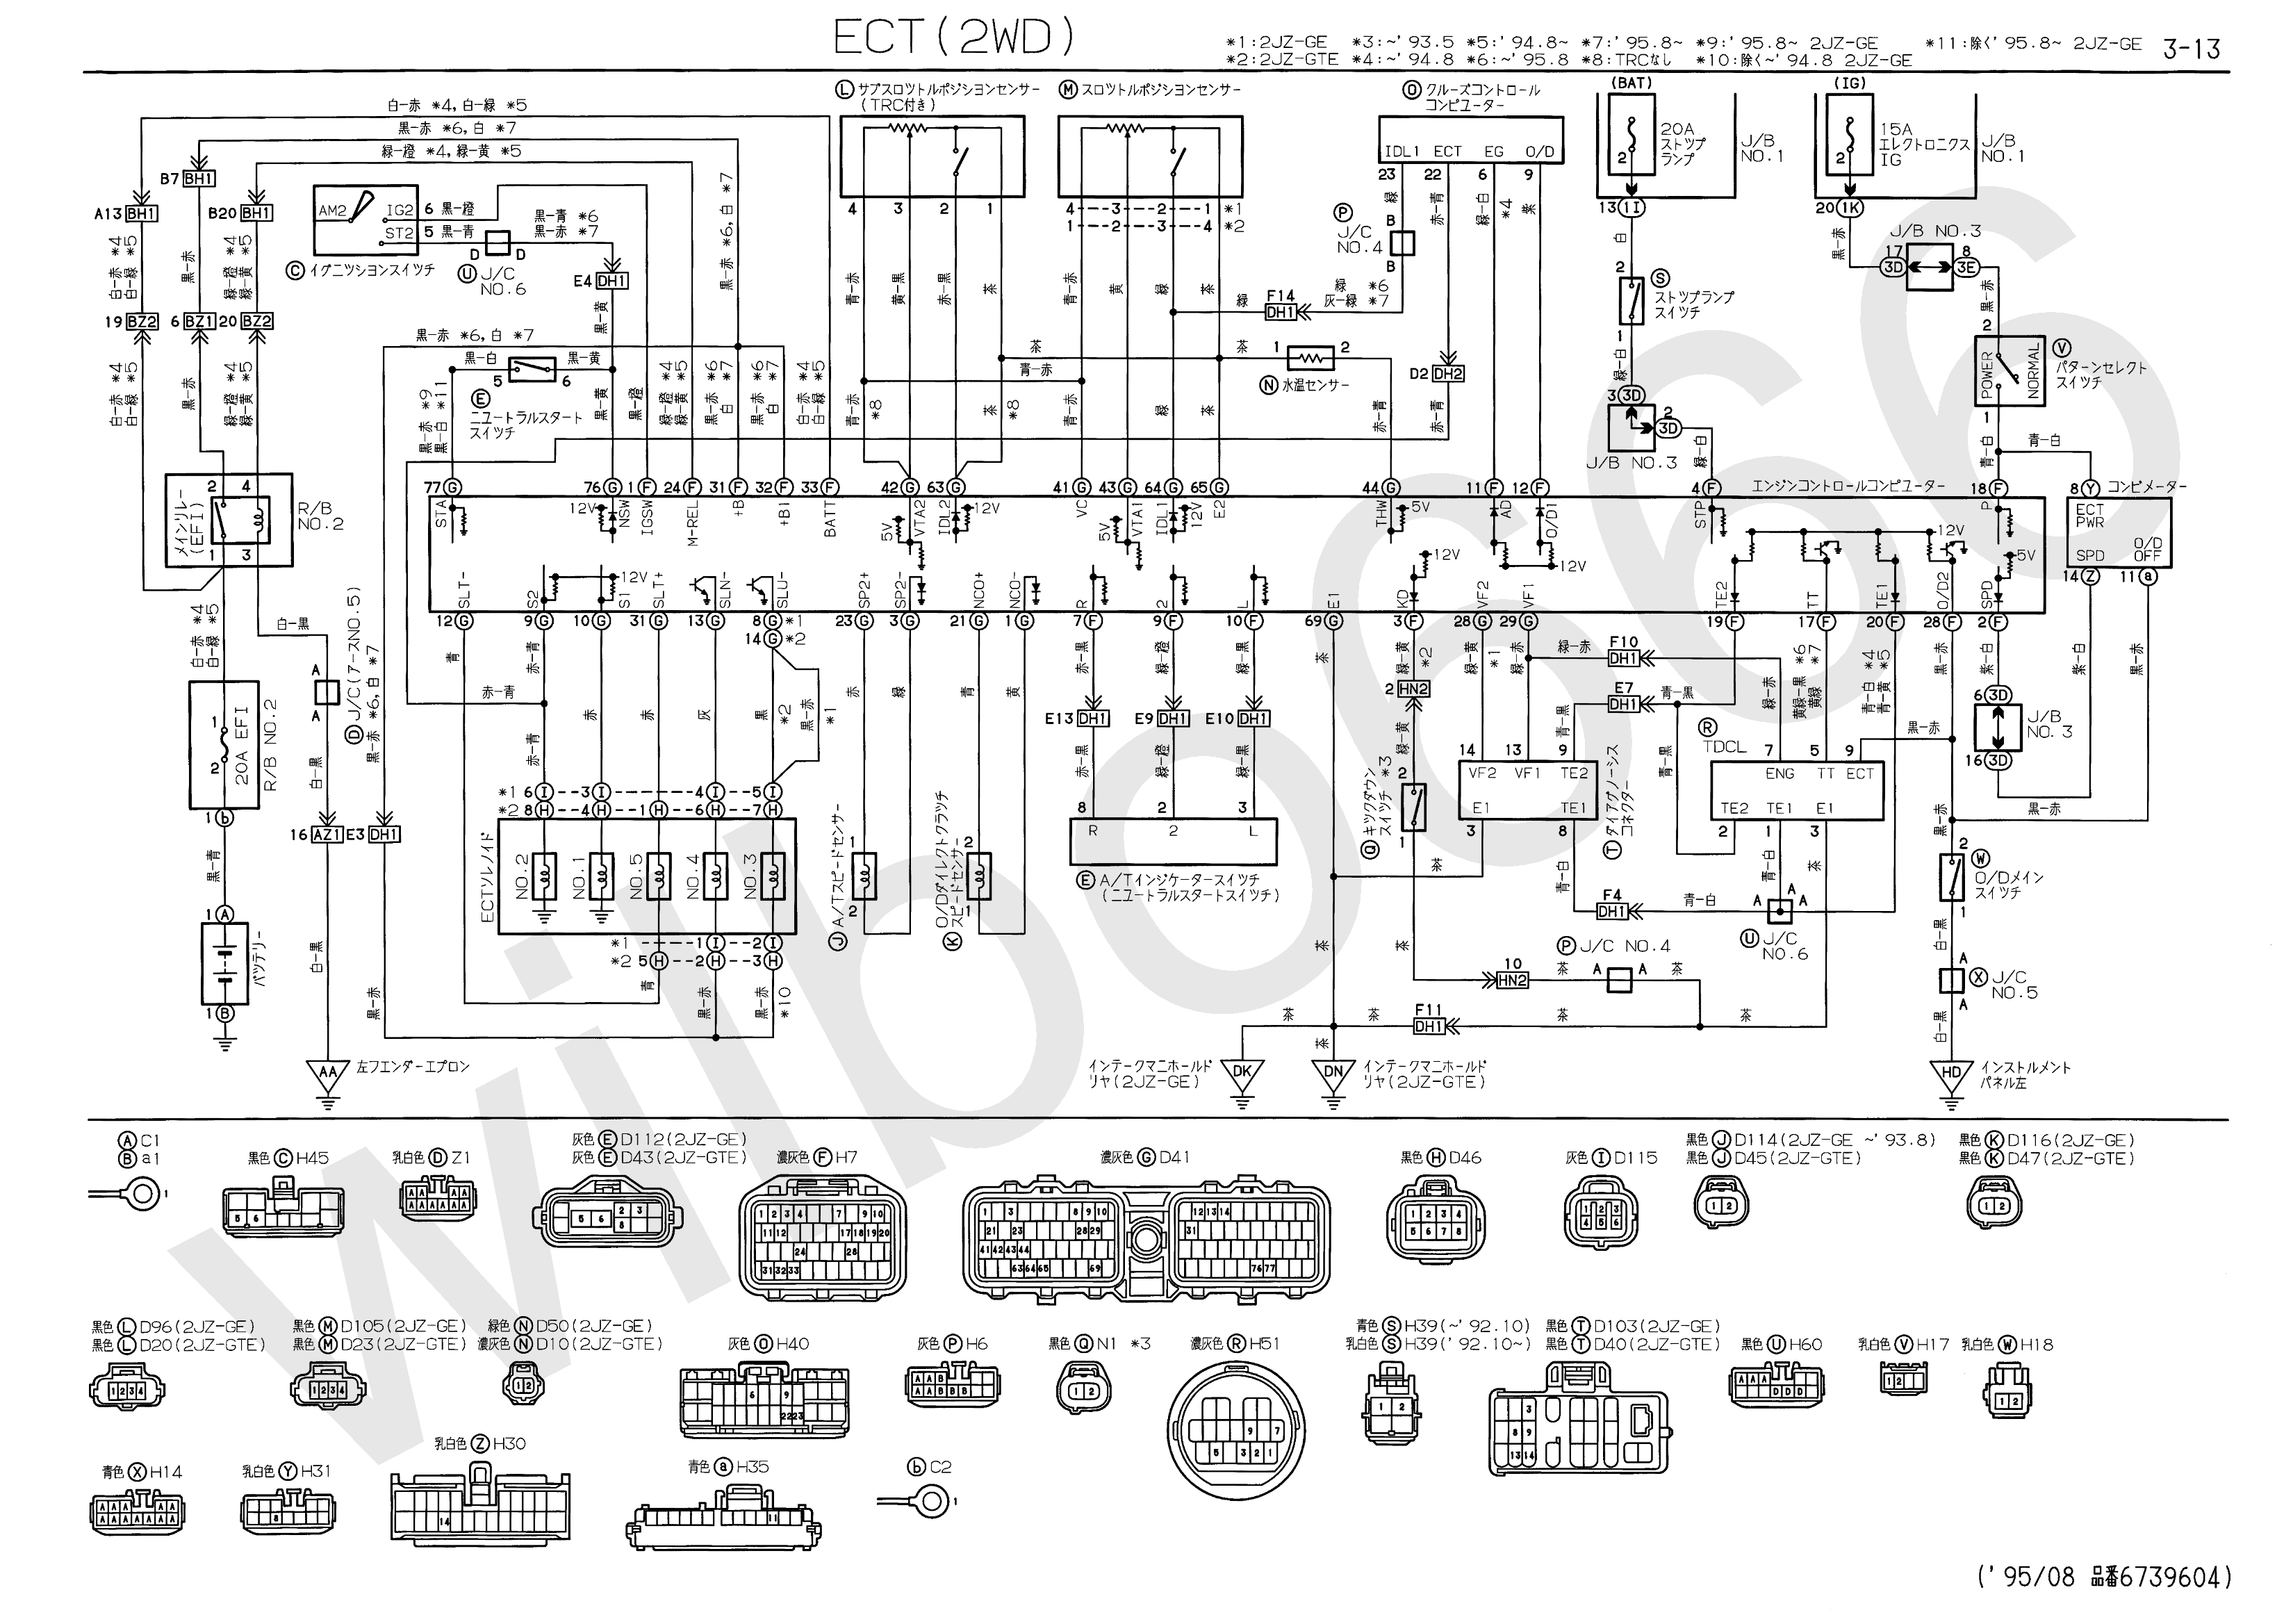 2JZ GTE 20JZS147 20Aristo 20Engine 20Wiring on lighting diagrams